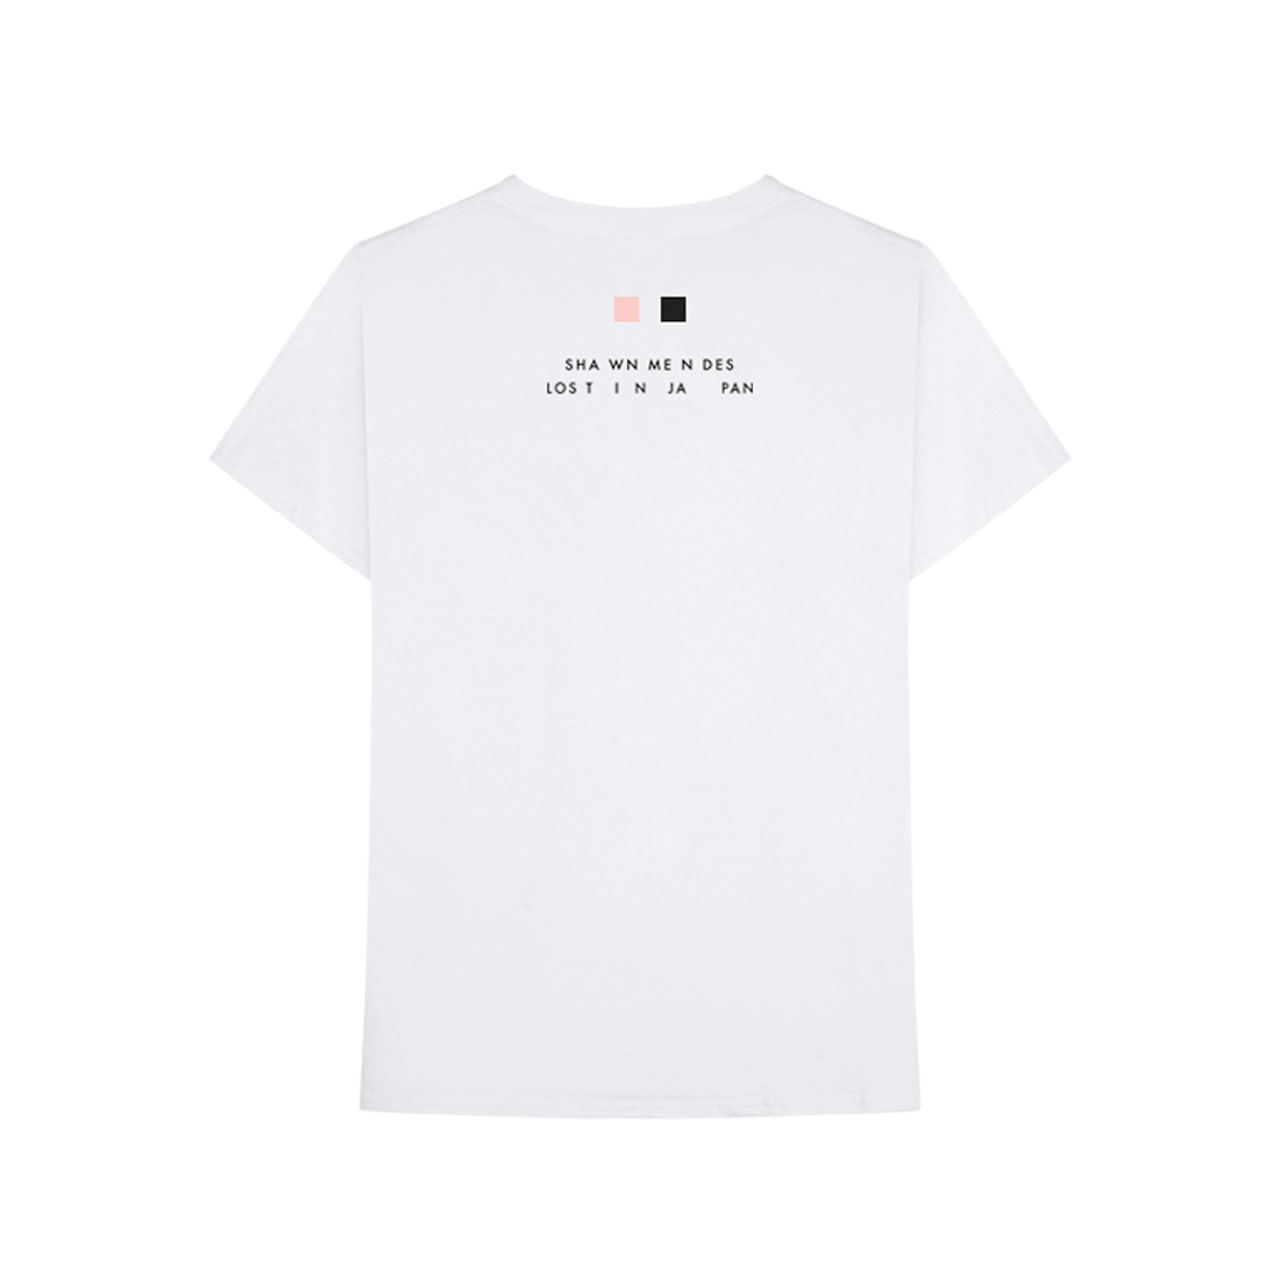 a81a91914 Shawn Mendes Lost In Japan Floral T-Shirt. Touch to zoom